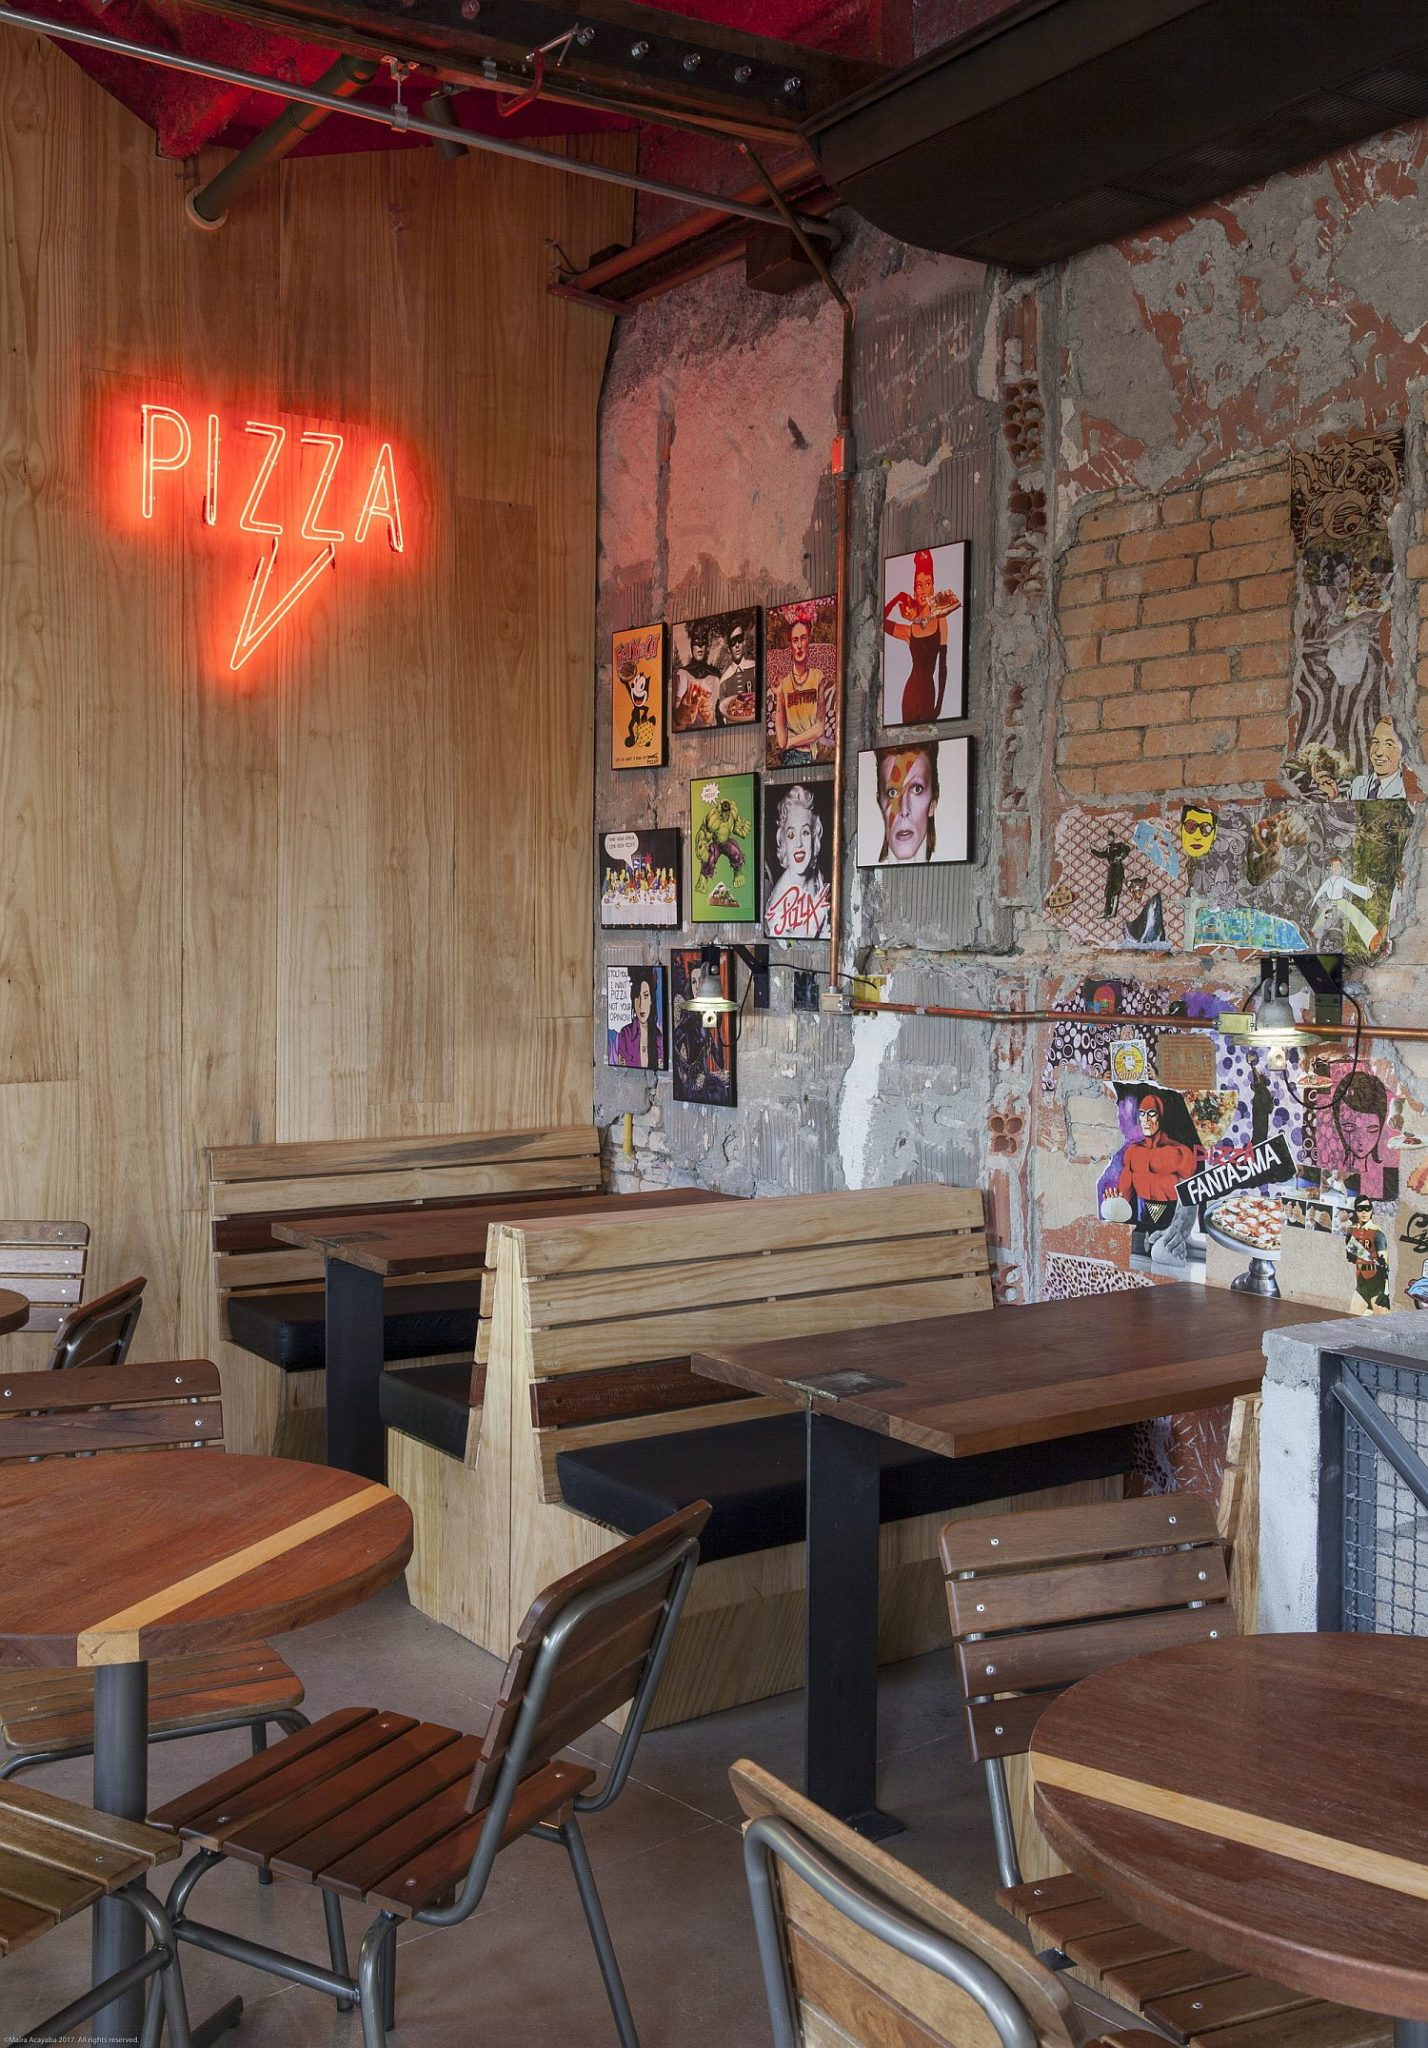 Wooden-decor-inside-the-pizza-house-designed-to-maximize-space